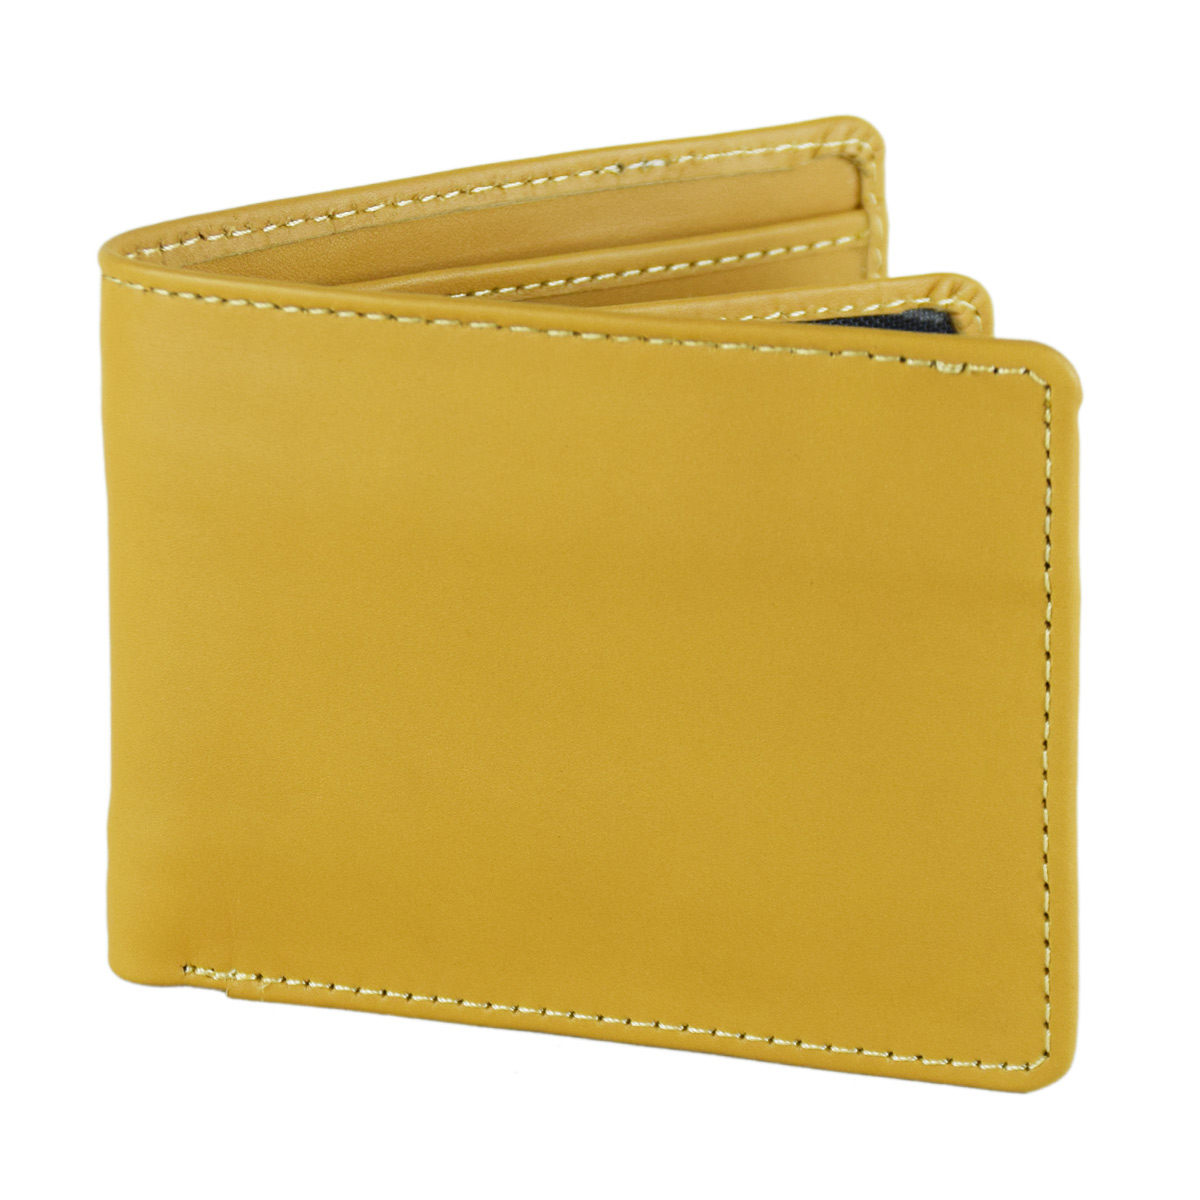 TAN WALLET WITH SEVERAL POCKETS